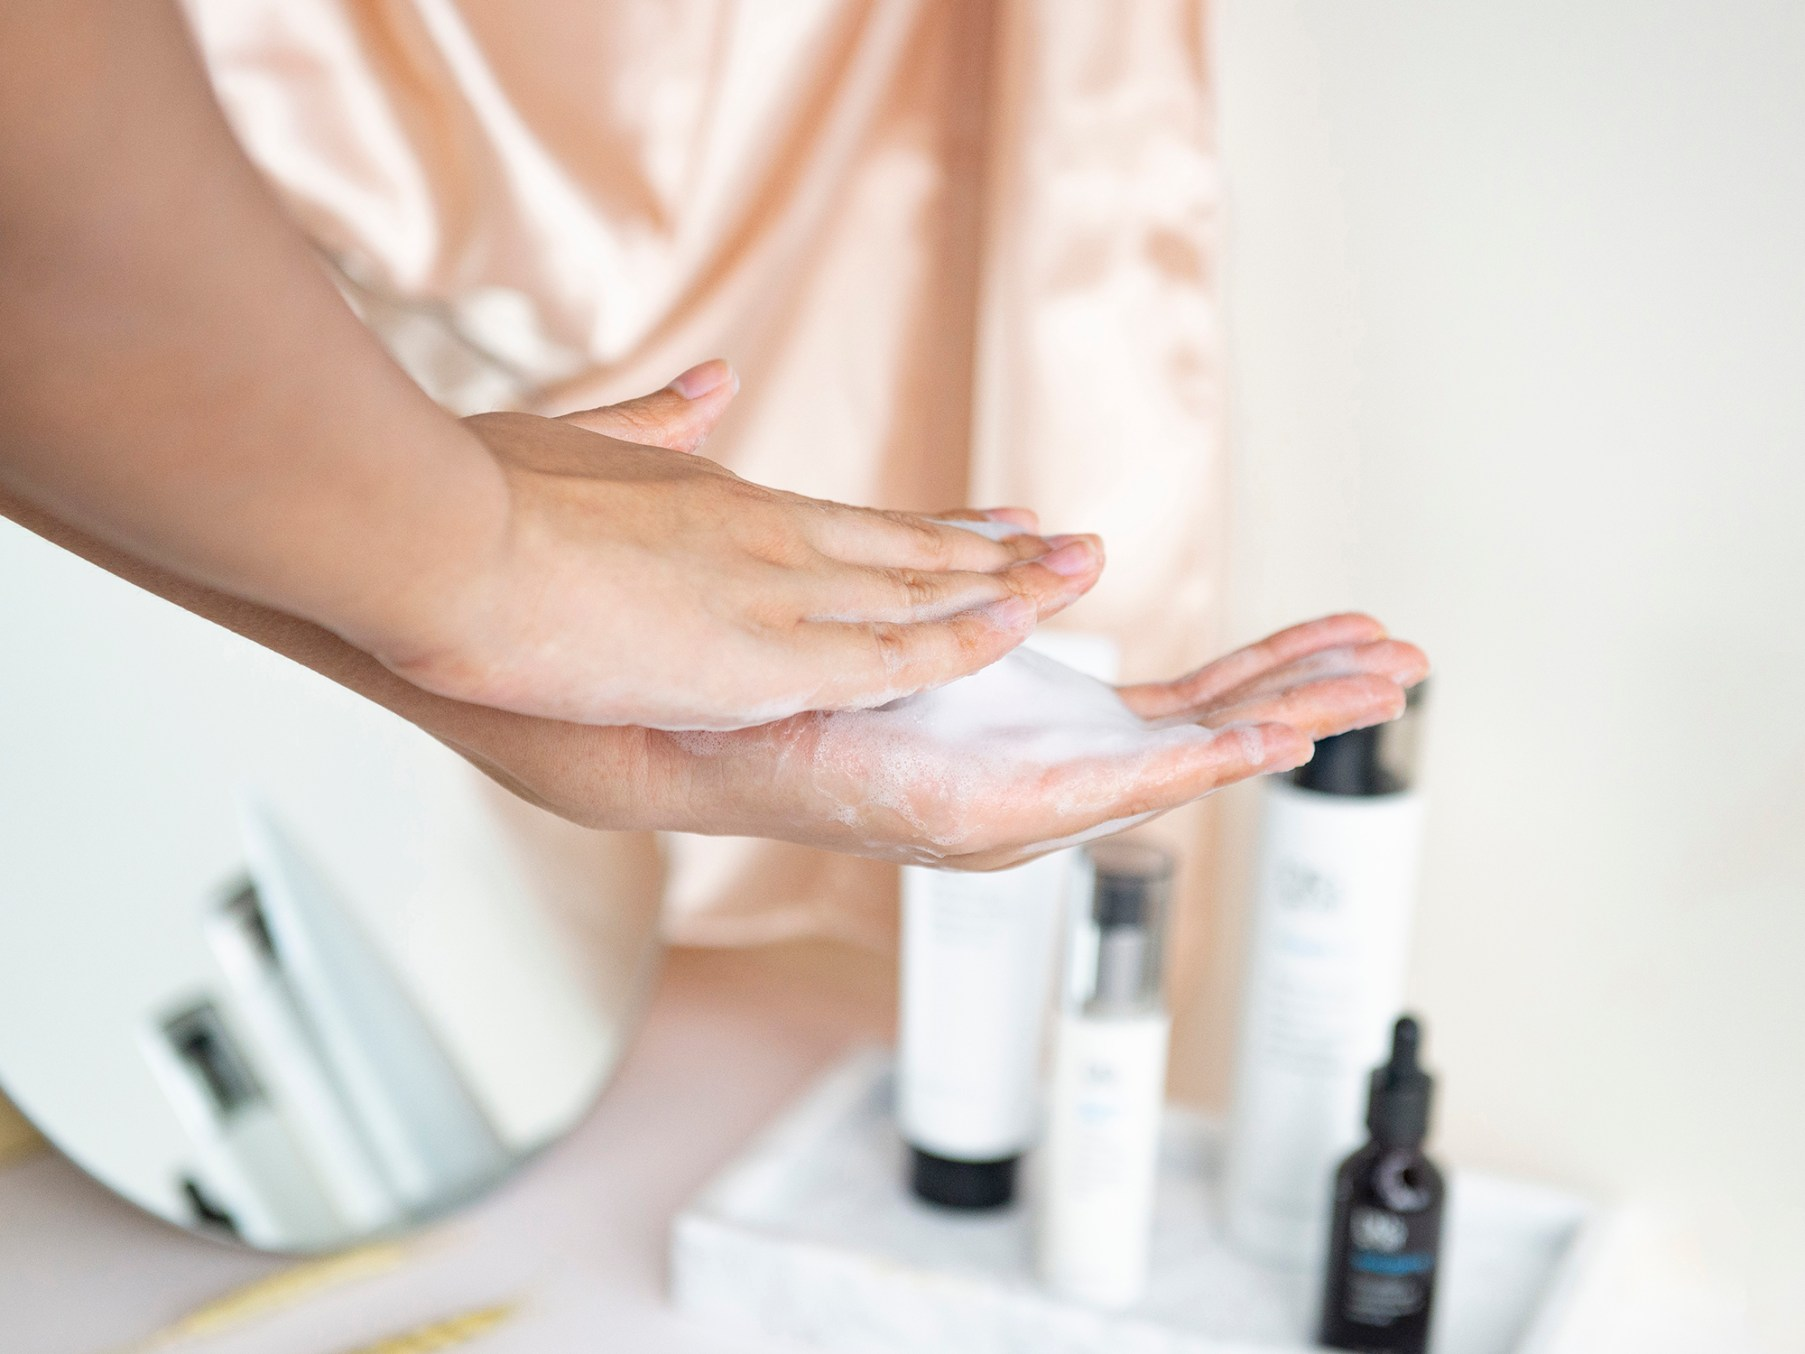 56 beauty junkies tried DR's Secret Cleanser 1 and here's what they have to say.